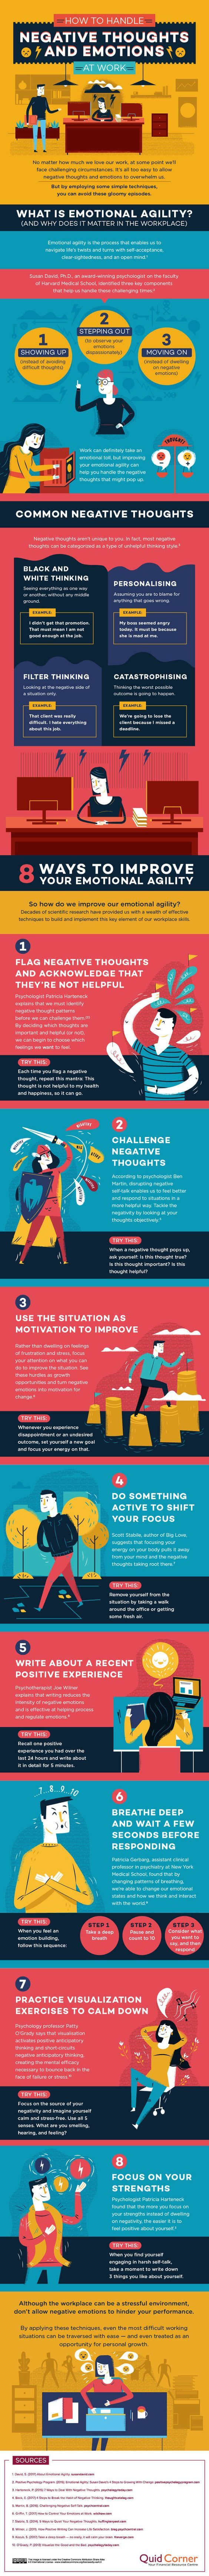 How to Handle Negative Thoughts And Emotions At Work